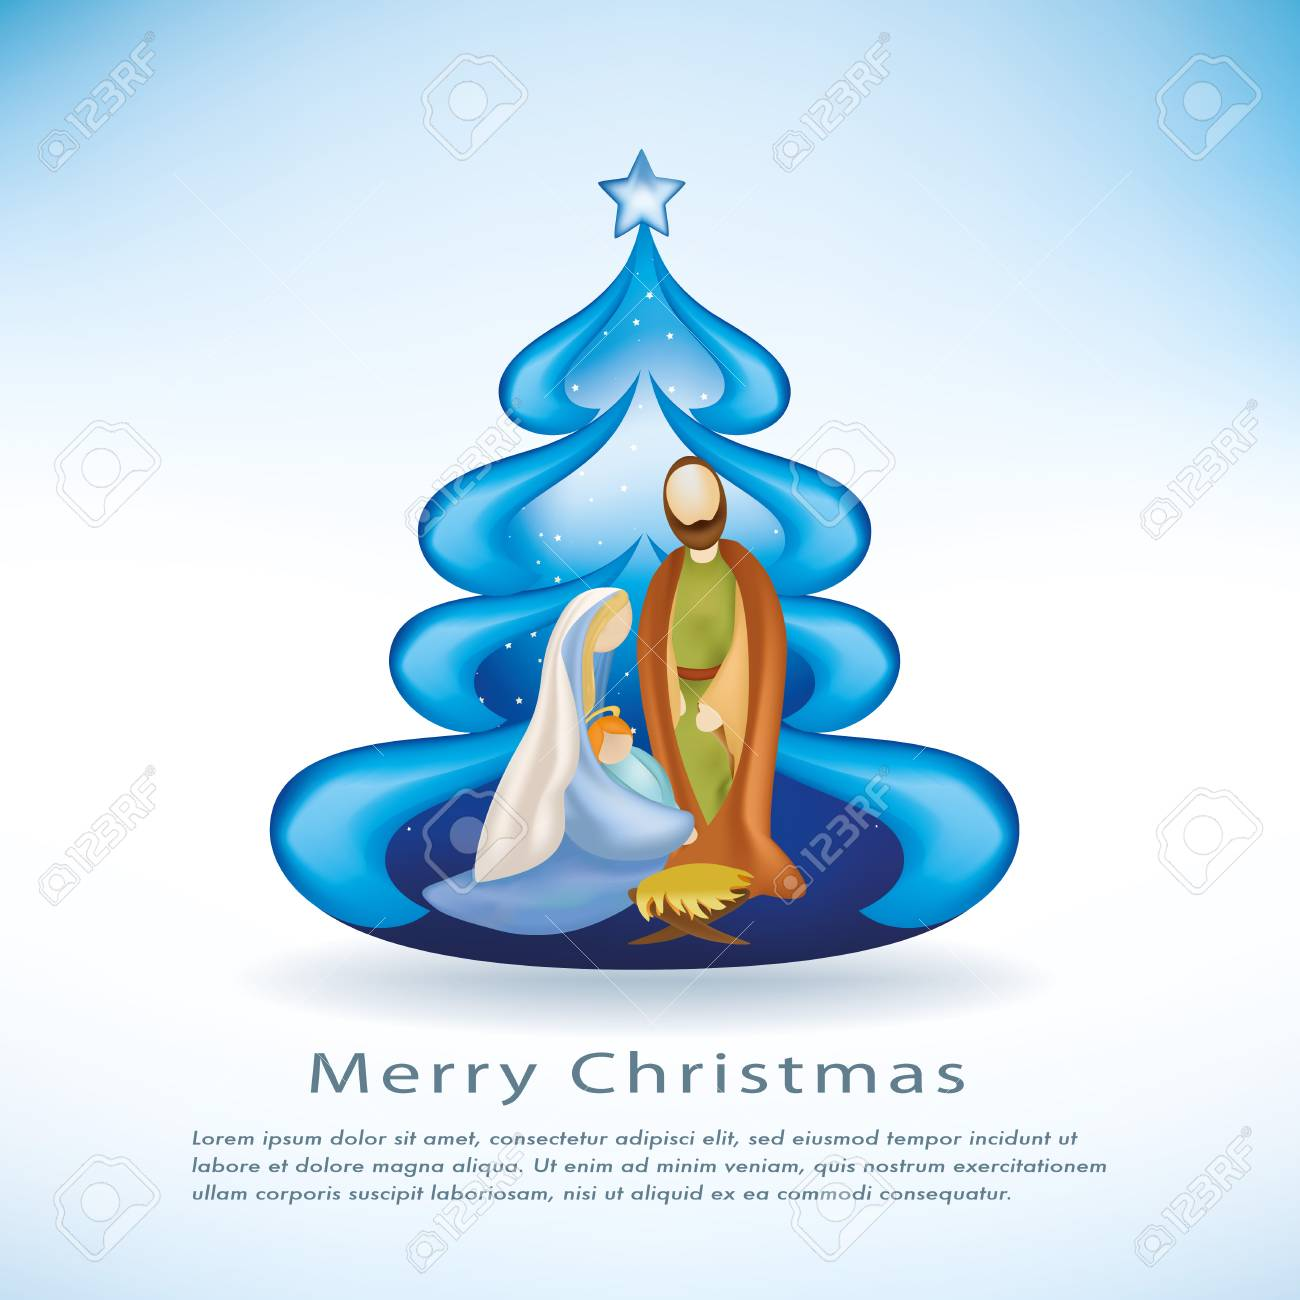 Christmas Cards With Nativity Scenes Christmas Tree On Blue ...